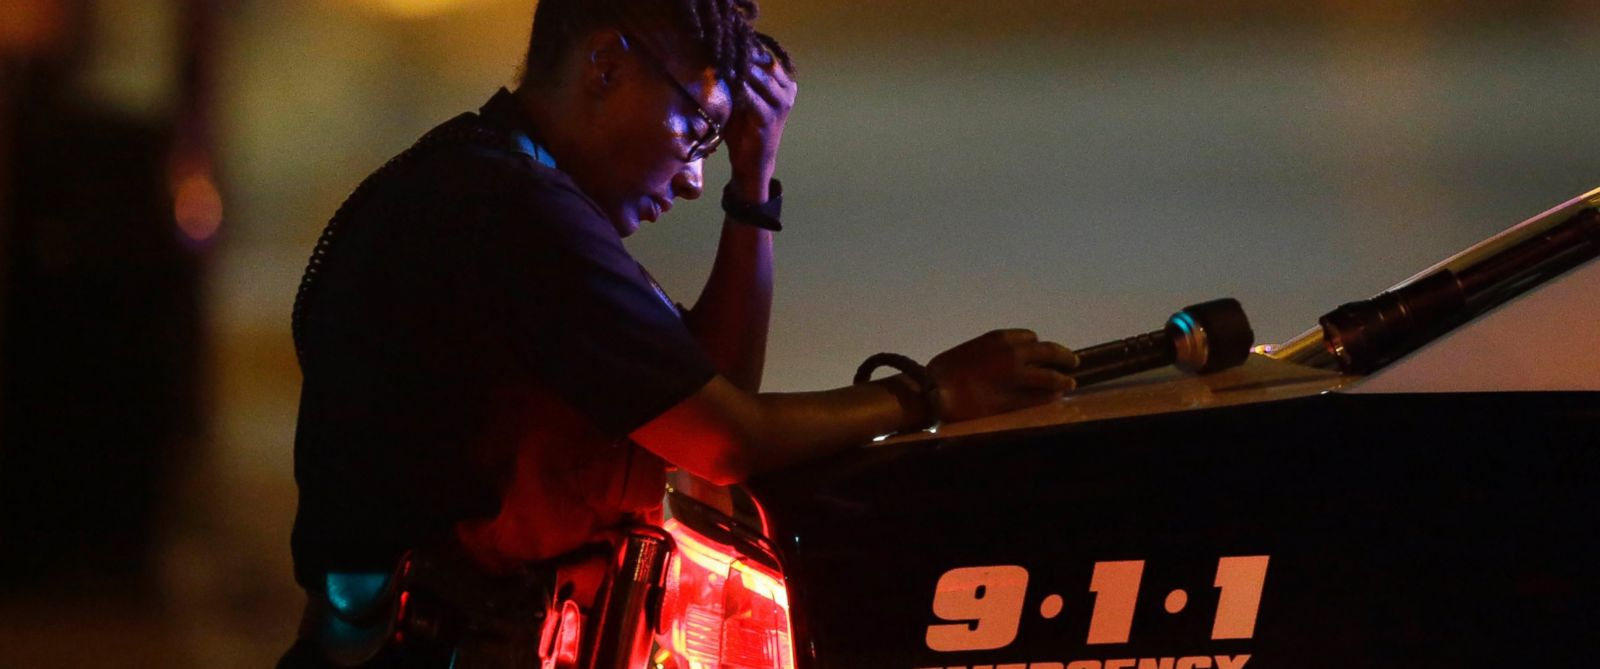 stress in police Stress training for cops' brains could reduce suspect shootings police shot terence crutcher, an unarmed man, and police academies often do not prepare officers to.